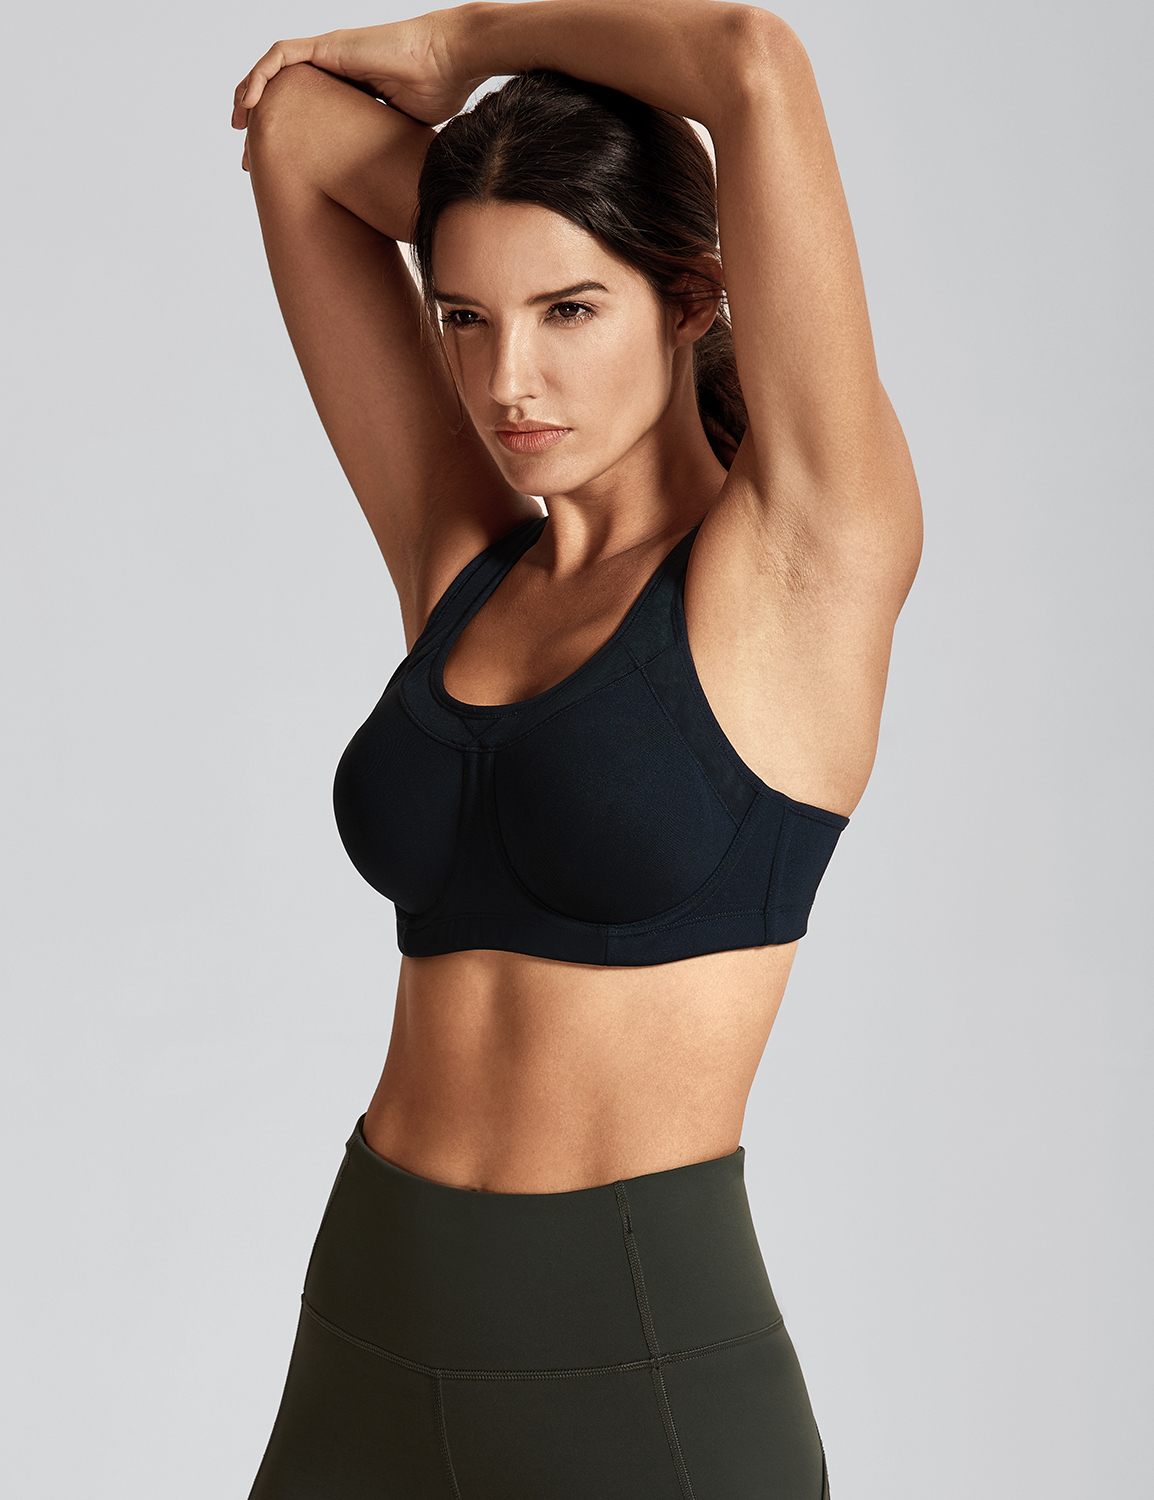 Women-039-s-High-Impact-Full-Coverage-Bounce-Control-Plus-Size-Workout-Sports-Bra thumbnail 8